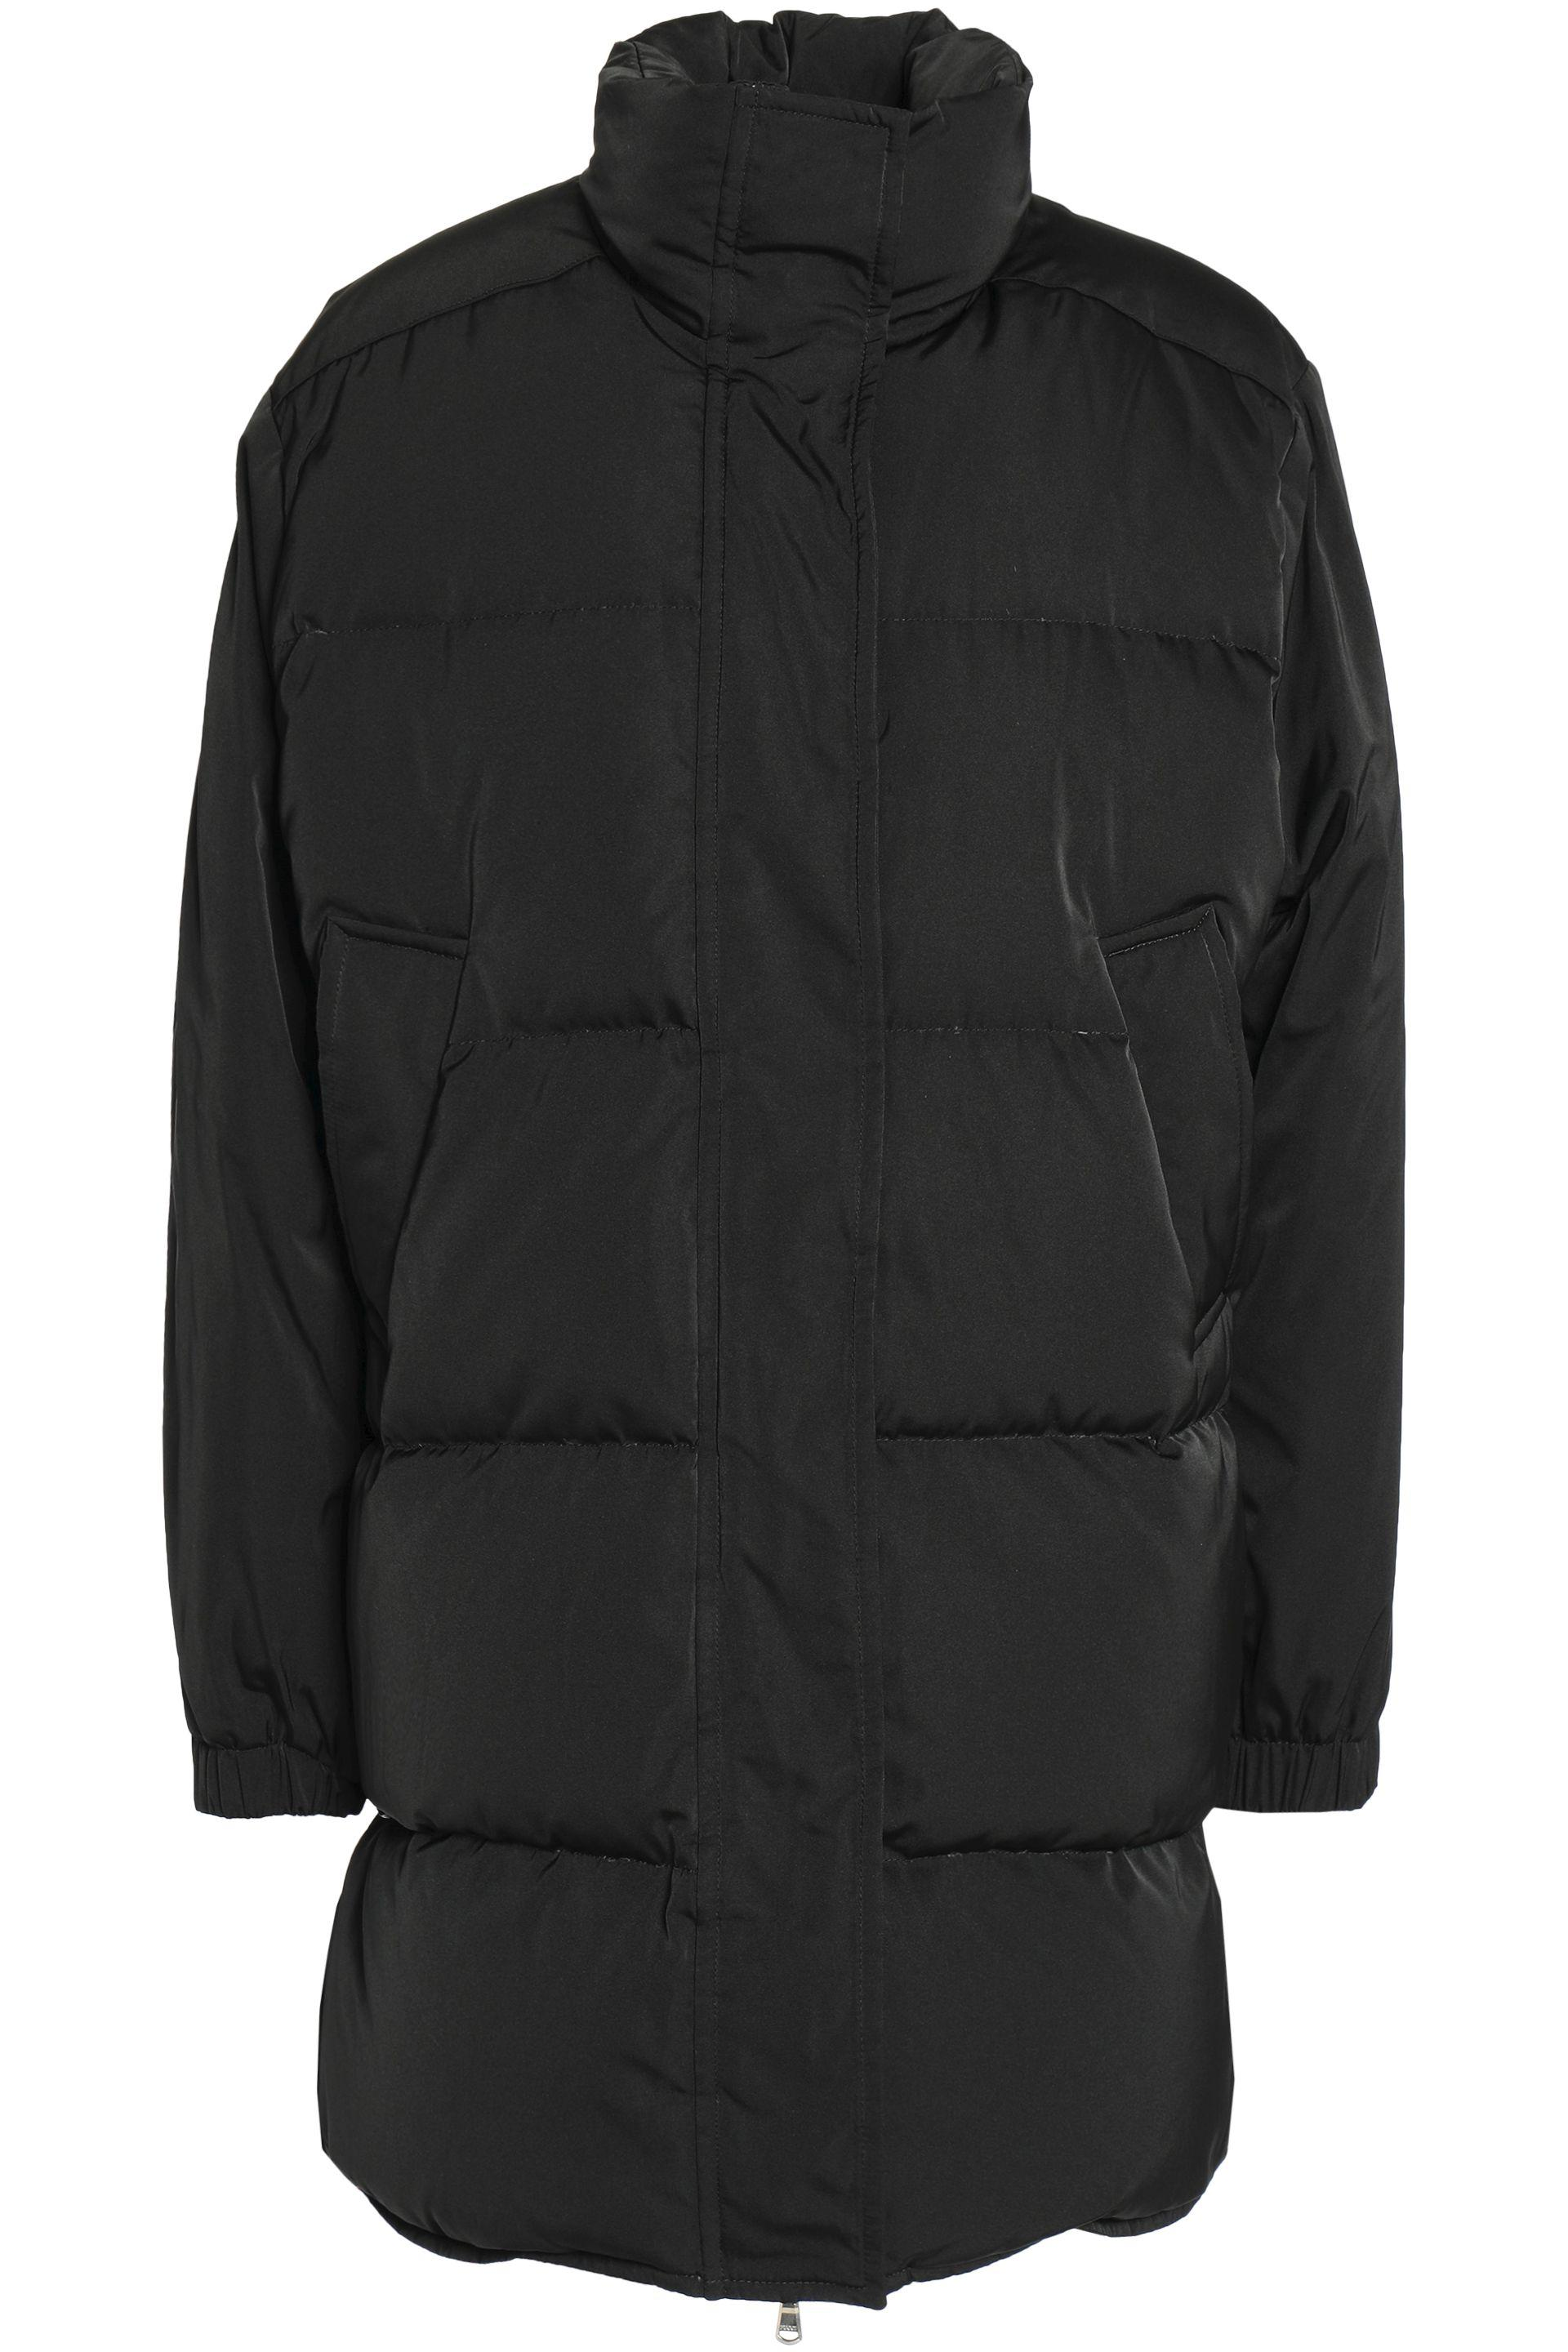 75012be19baf Emilio Pucci Woman Quilted Shell Down Jacket Black in Black - Lyst